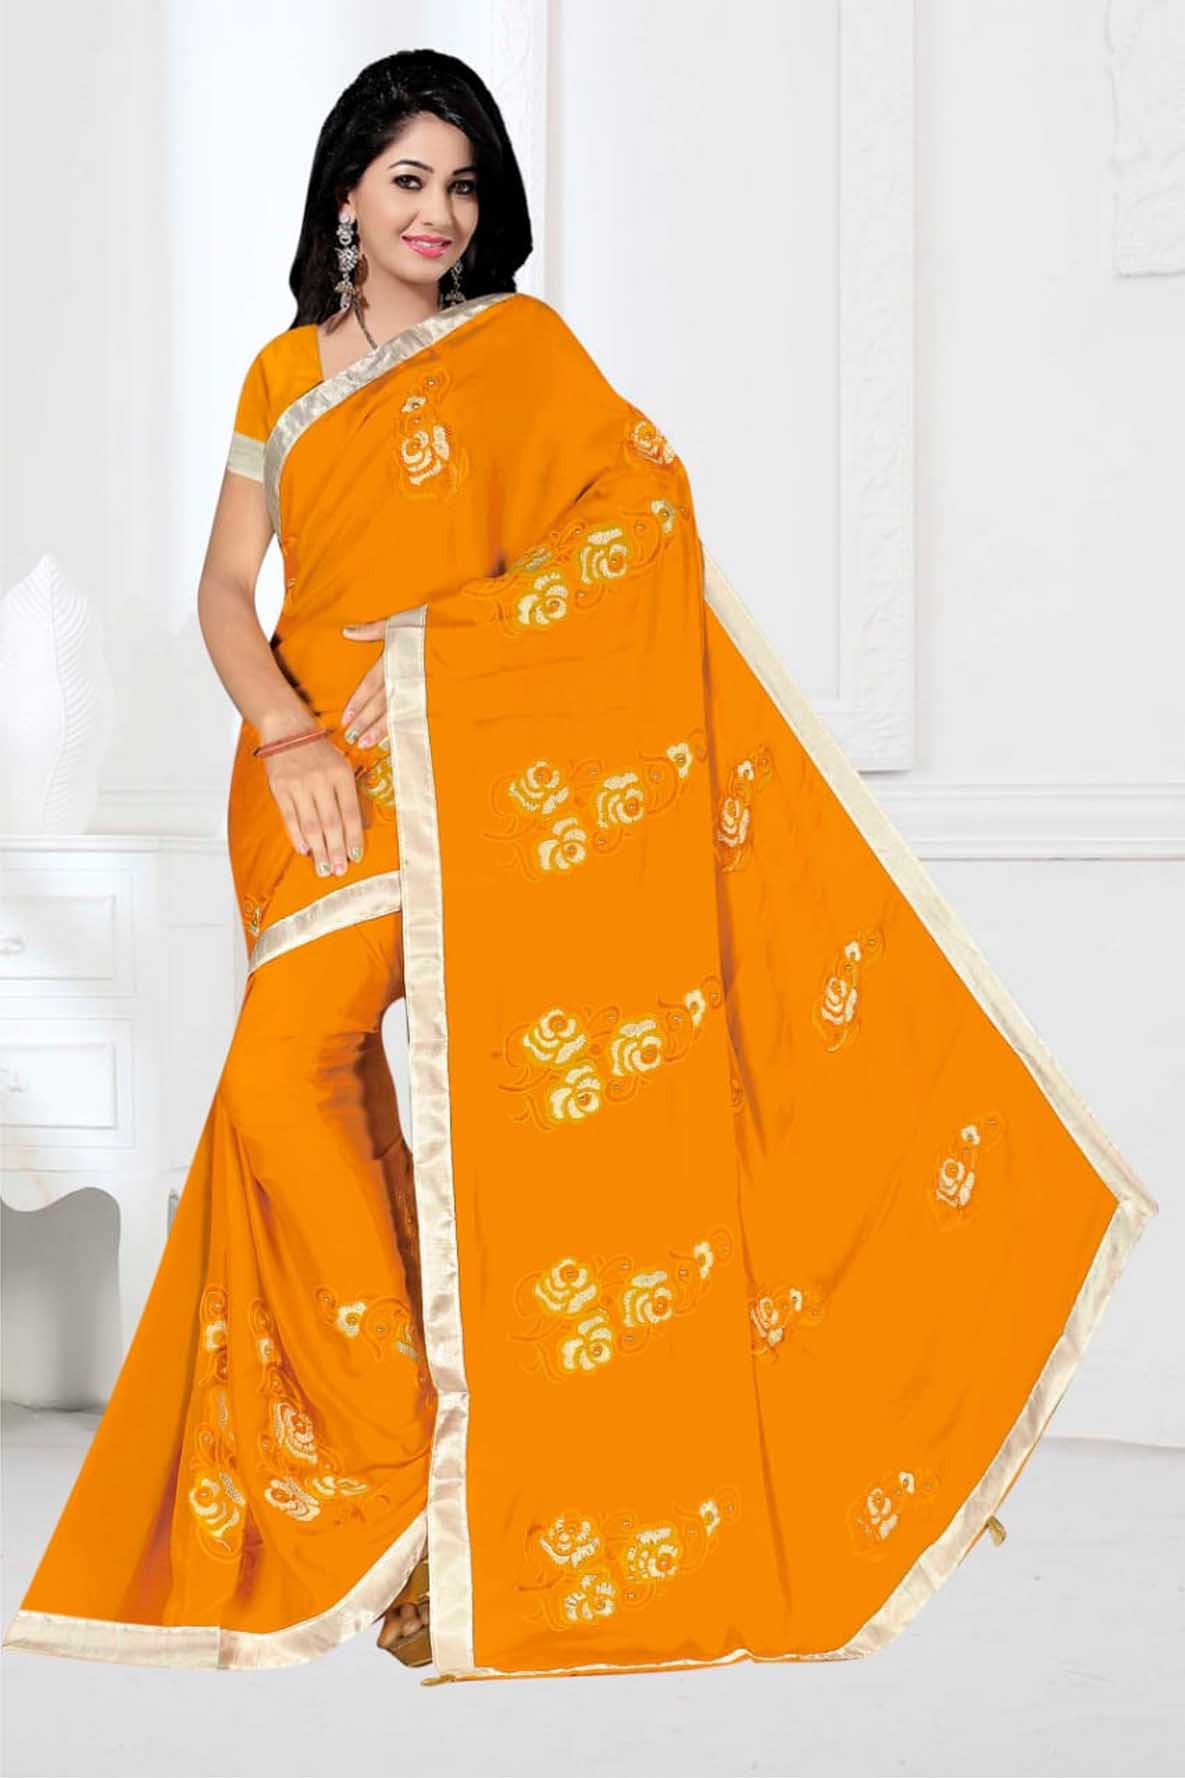 WOMEN SAREE WITH BLOUSE-YELLOW-DF 1010 2019